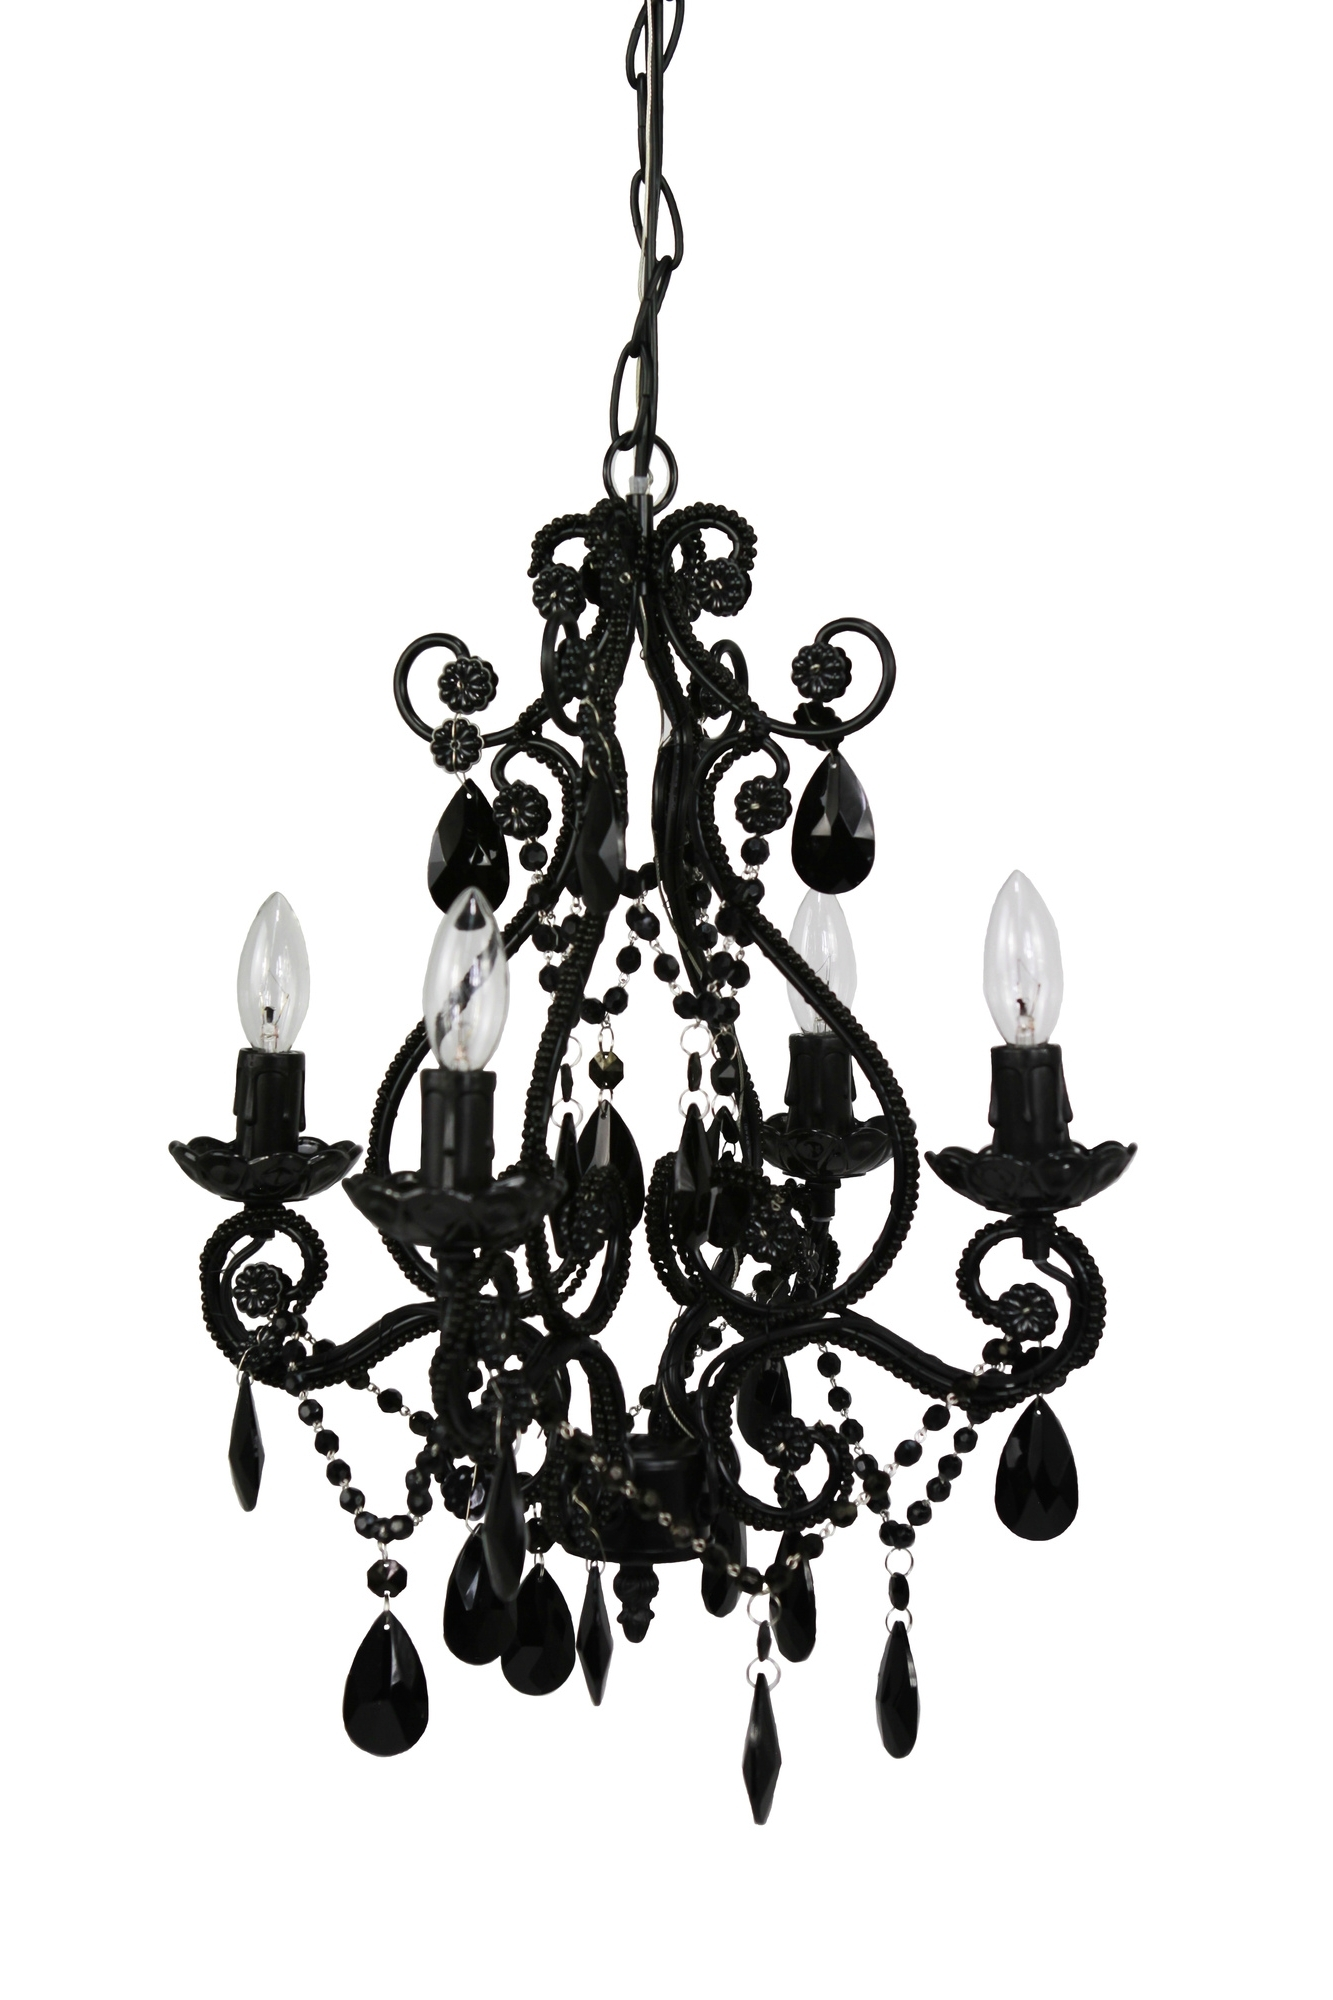 Cheap Chandelier, Chandeliers And Modern With 2018 Black Chandeliers (View 9 of 20)